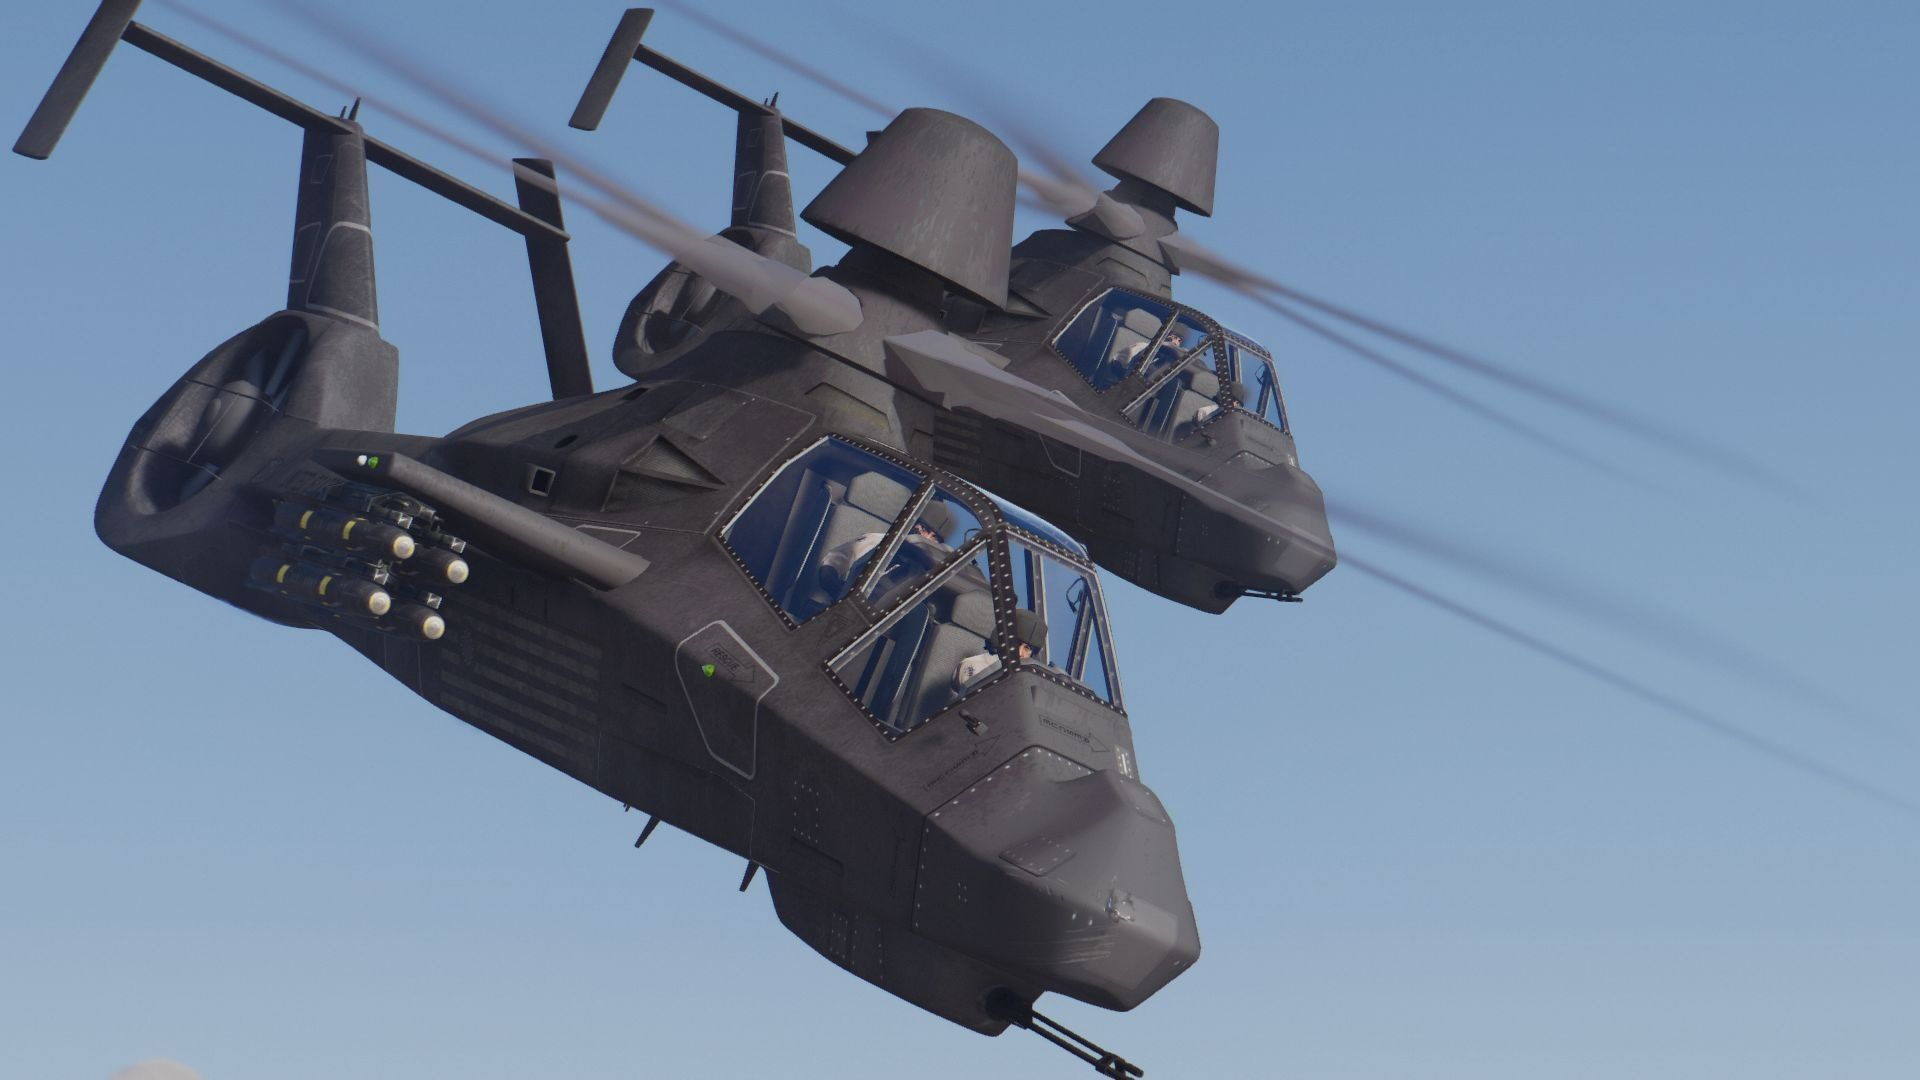 Pin by Kyle Wigboldy on Helicopter Ideas   Stealth aircraft